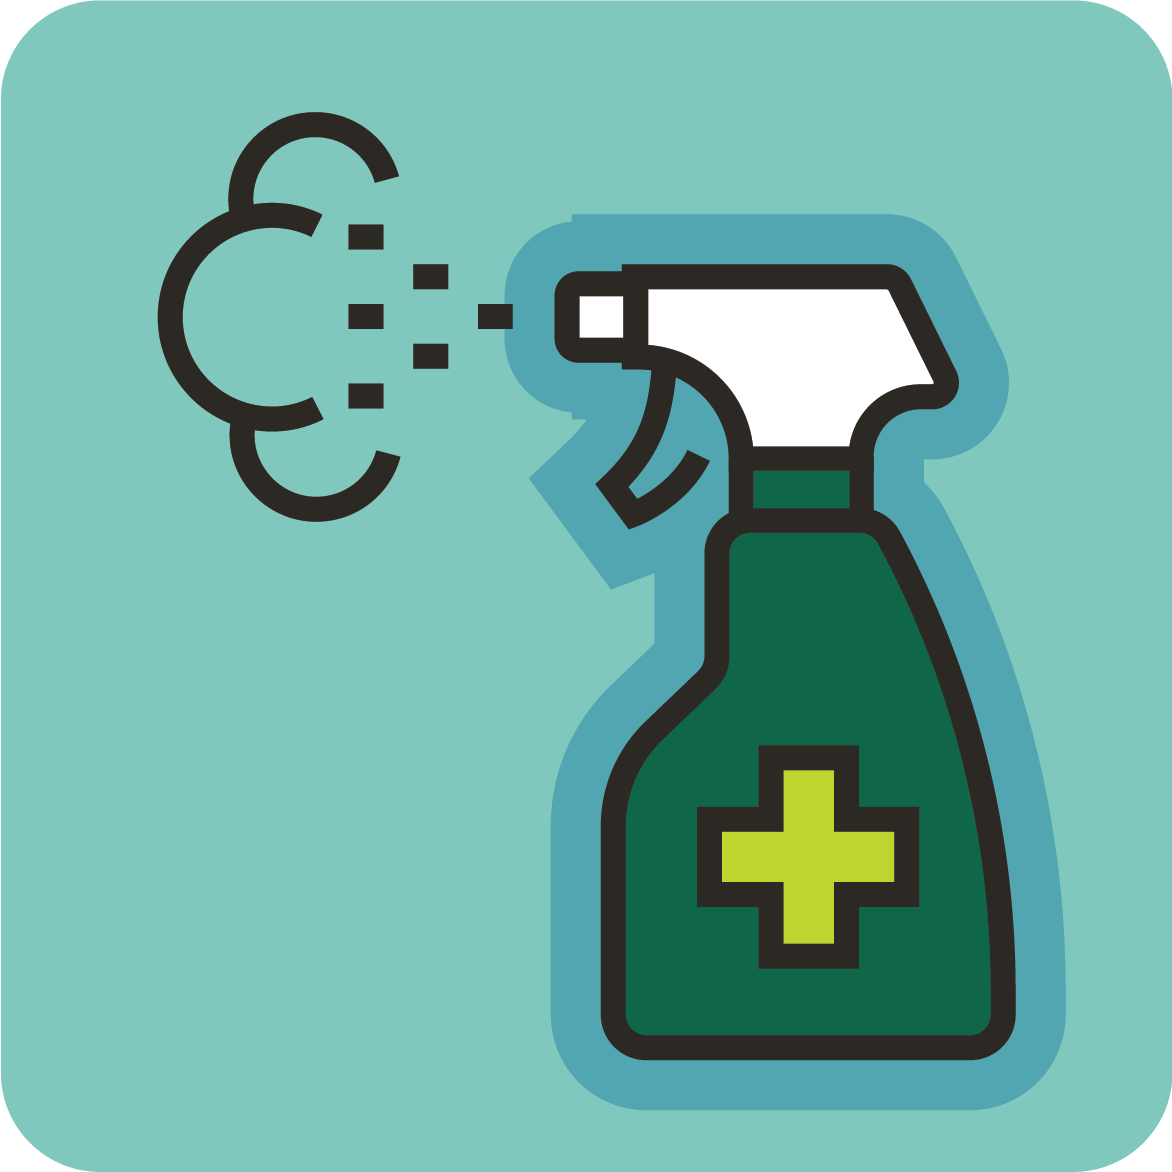 Cleaner icon - sanitize and clean